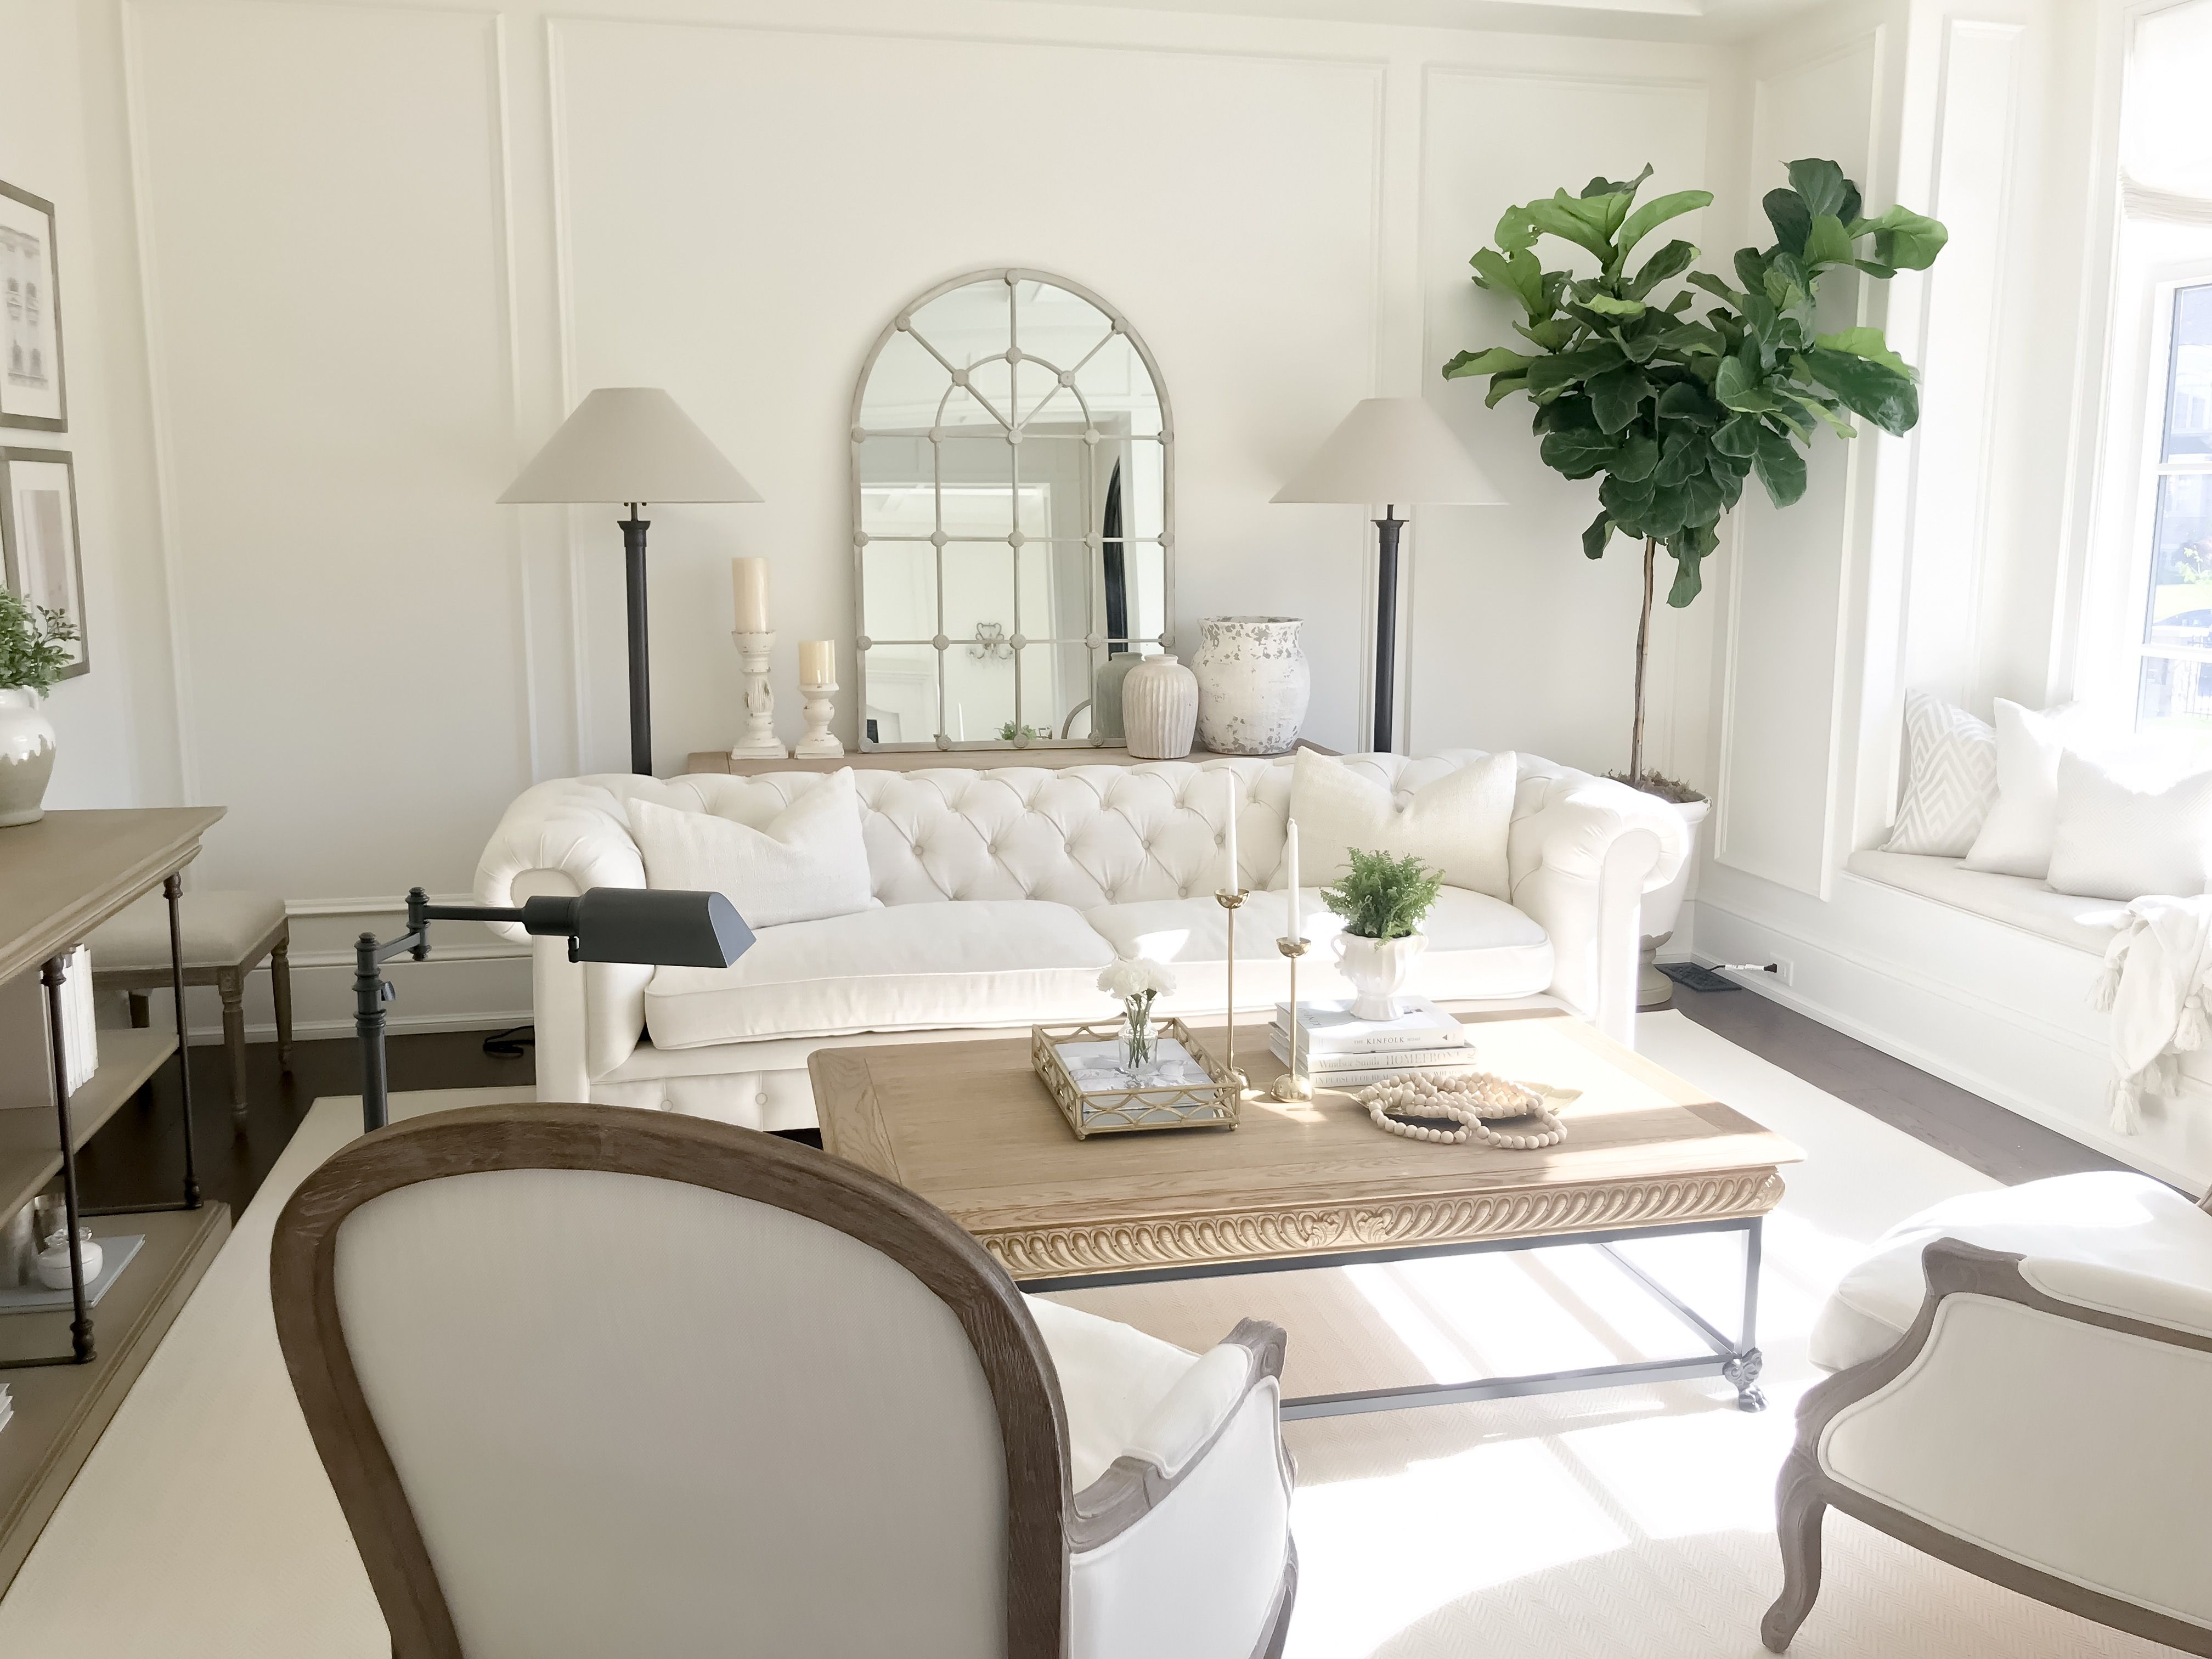 White living room decor l interior design l tufted couch l restoration hardware l fiddle leaf